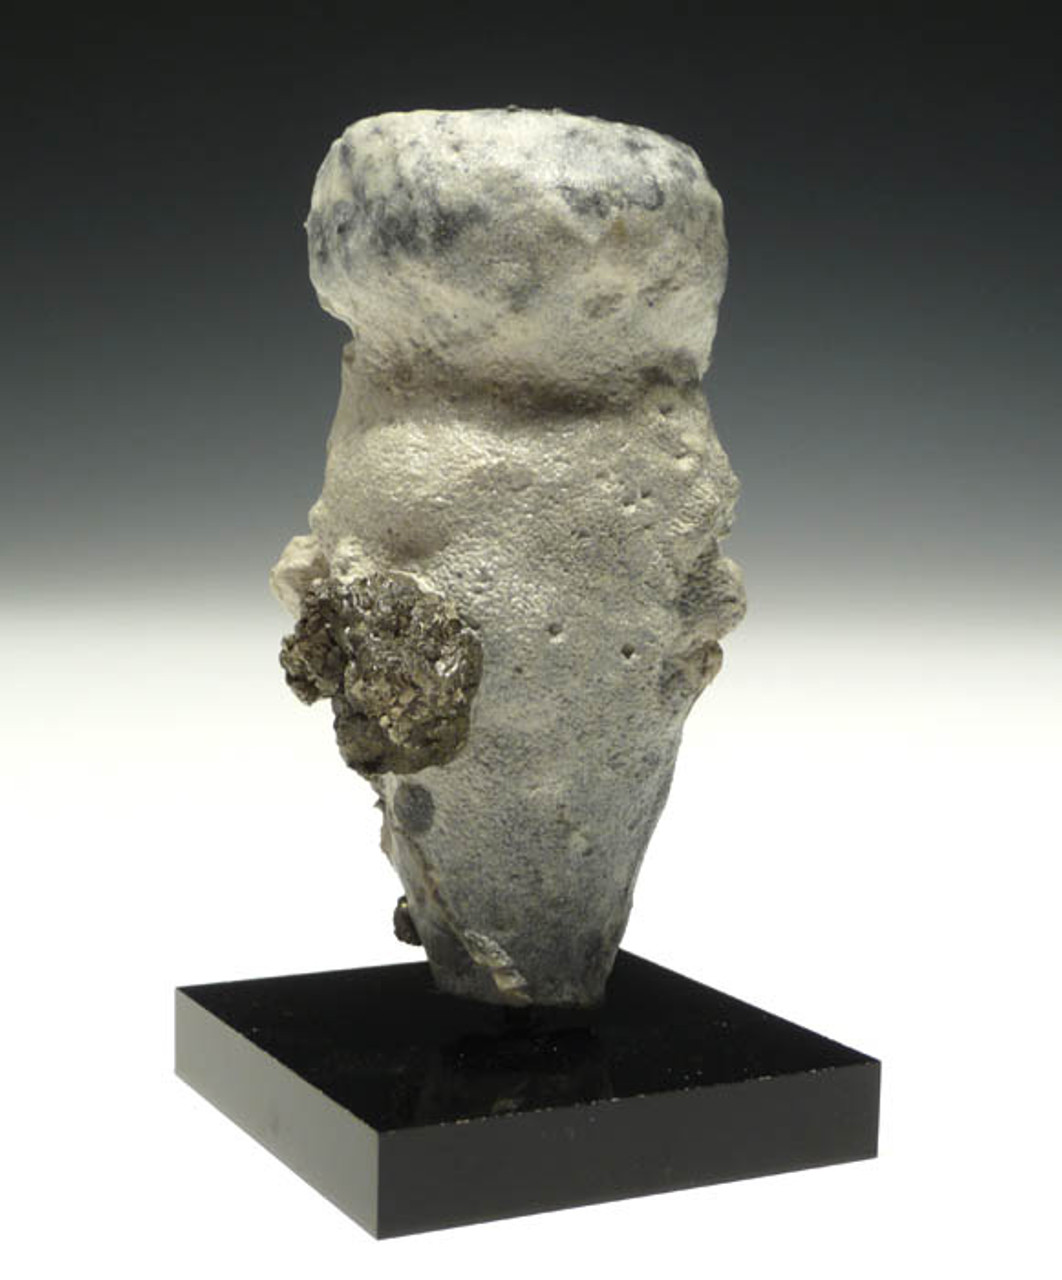 SP018 - CAMPANIAN-ERA THREE DIMENSIONALLY-PRESERVED CRETACEOUS SPONGE WITH DELICATE INTACT ANATOMY